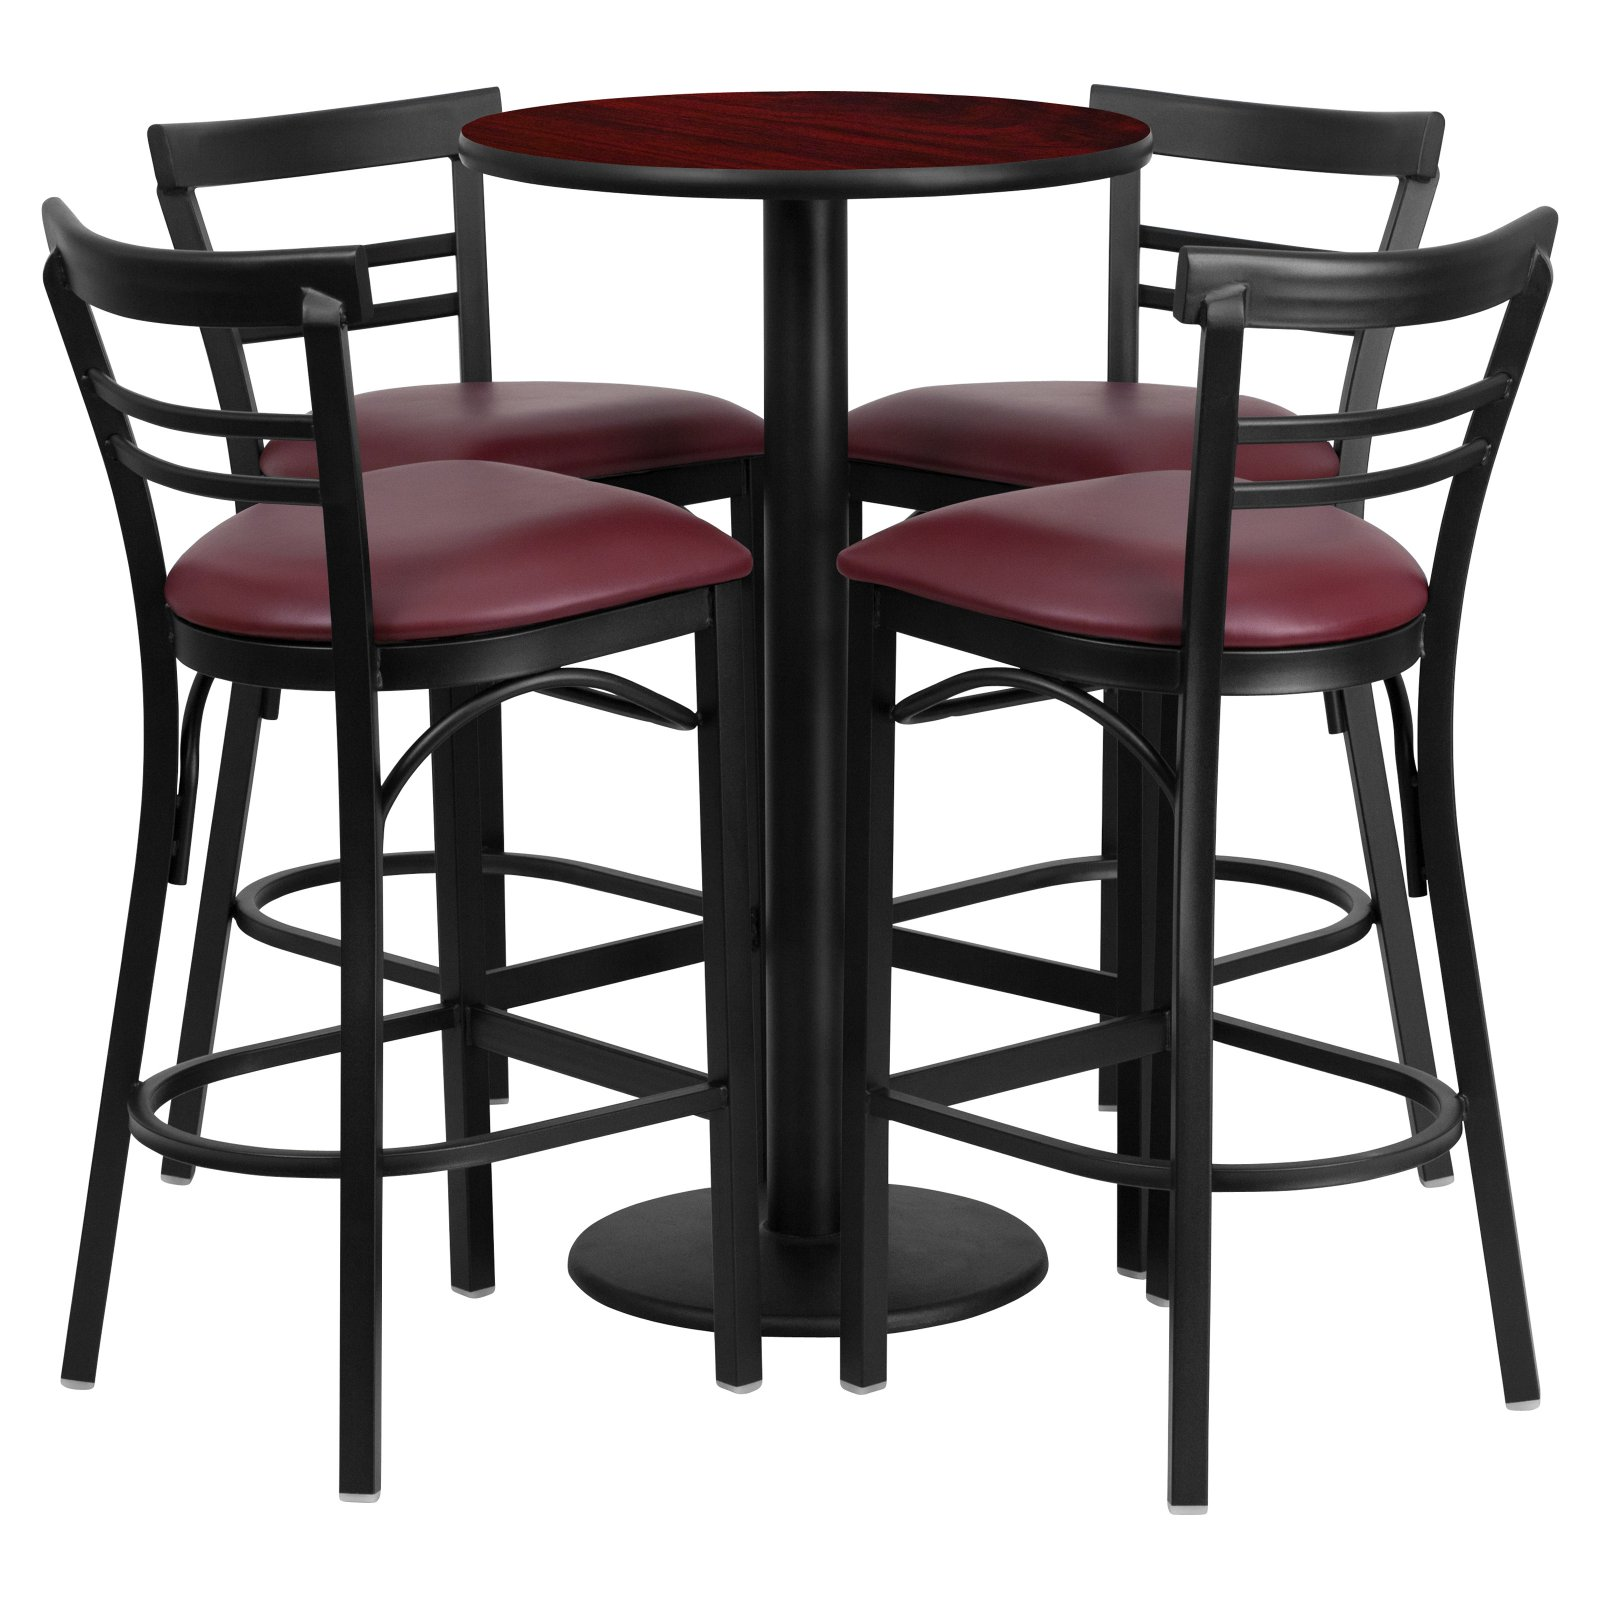 Flash Furniture 24'' Round Mahogany Laminate Table Set with 4 Ladder Back Metal Barstools, Burgundy Vinyl Seat